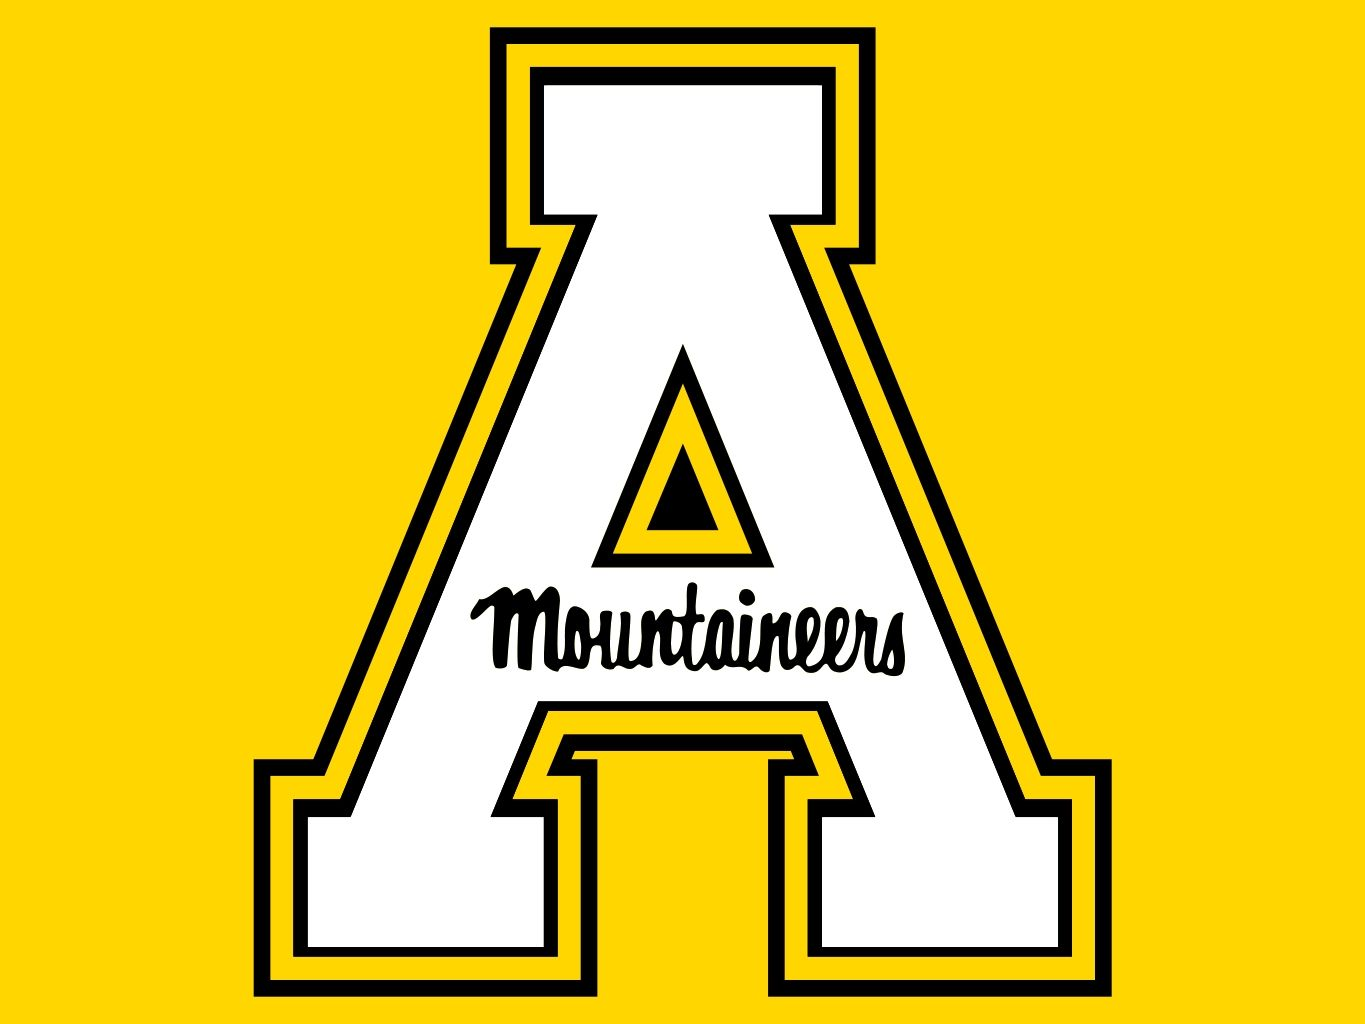 appalachian state love go mountaineers accepted and going to appalachian state love go mountaineers accepted and going to college <